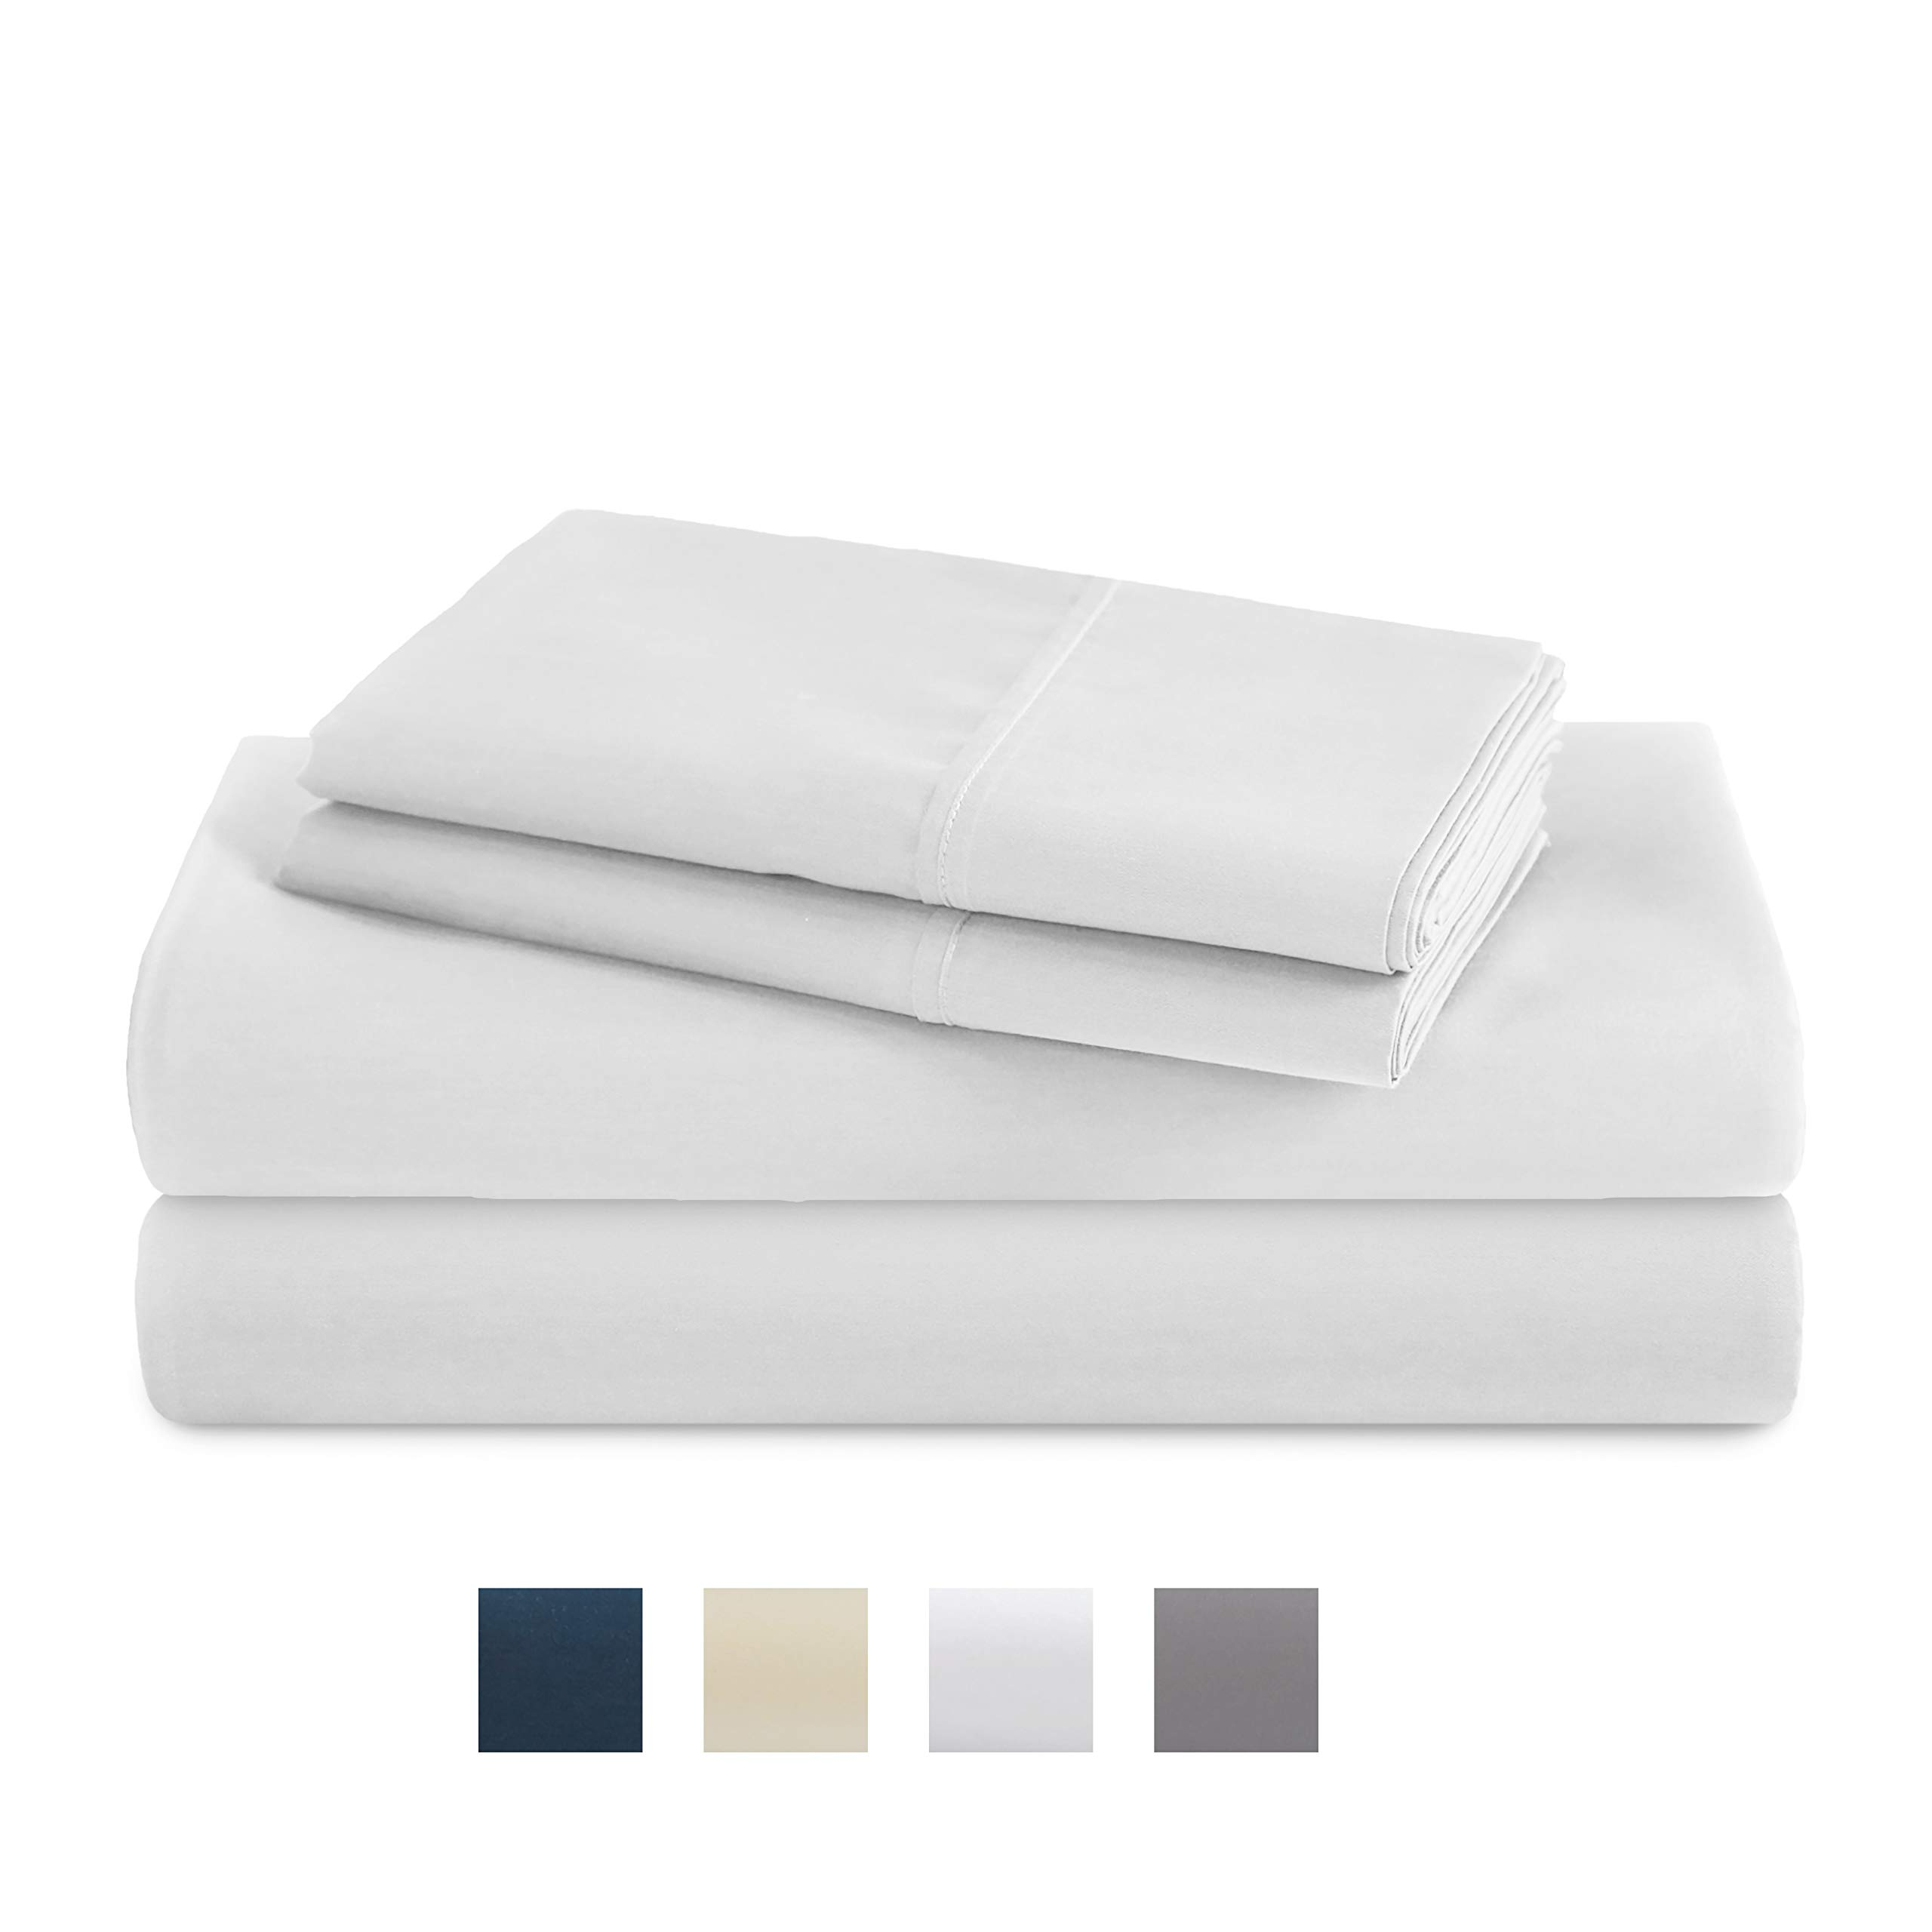 TRIDENT Queen Sheets, 400 Thread Count Sheet Set, 100% Cotton Sateen Weave, Moisture Wicking, Wrinkle Resistant, 4 Piece Sheet Set, Techno-fit, Soft, Air Rich Technology (Bright White, Queen)